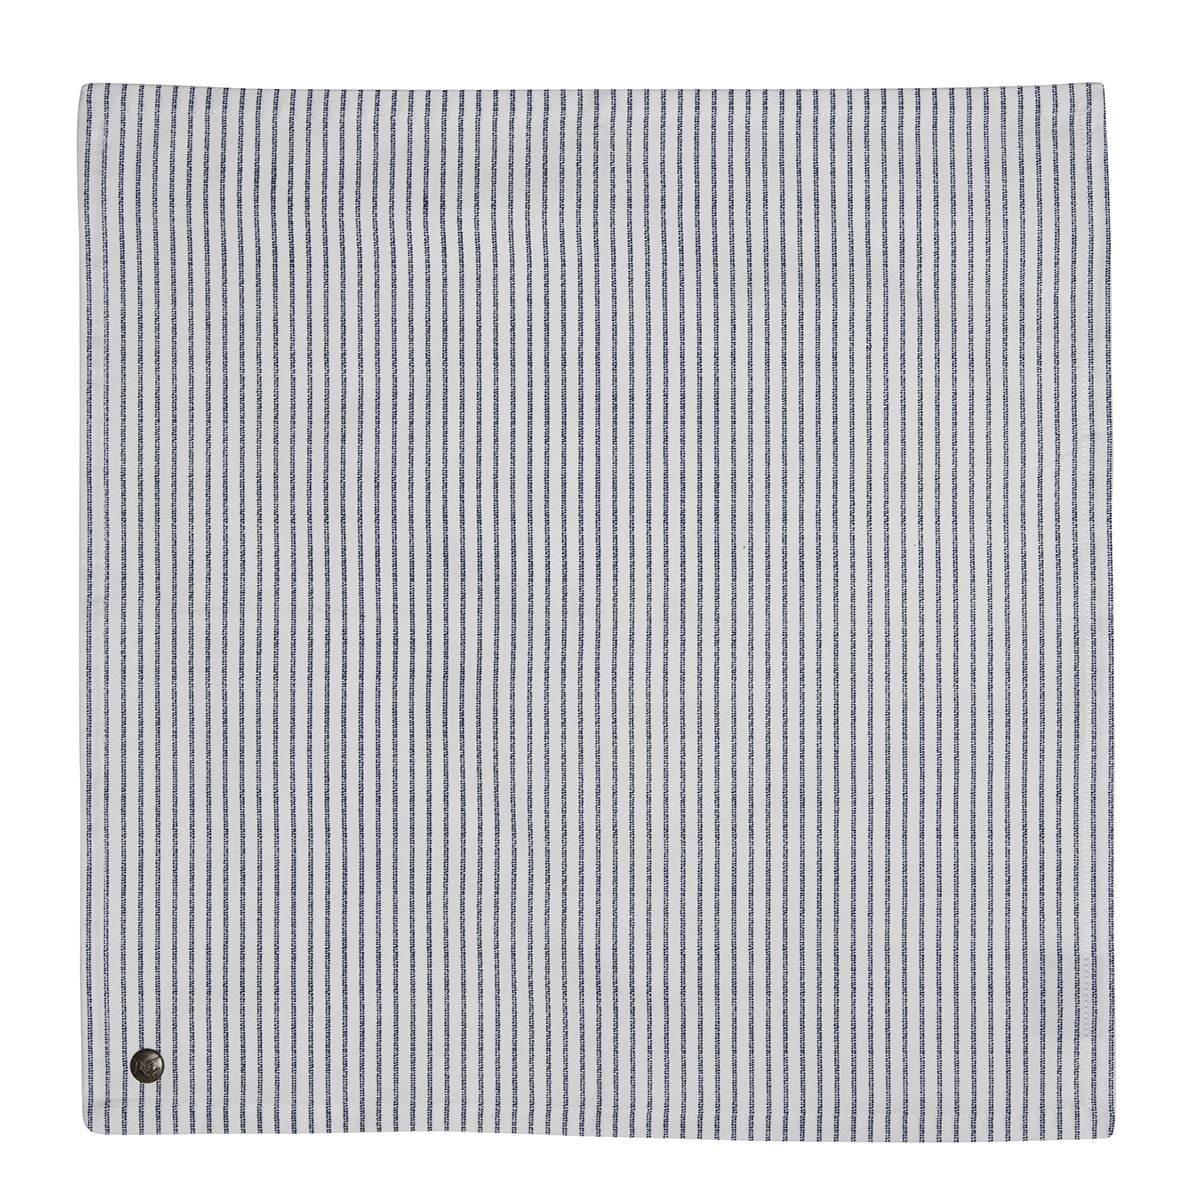 CANDY STRIPE NAPKIN